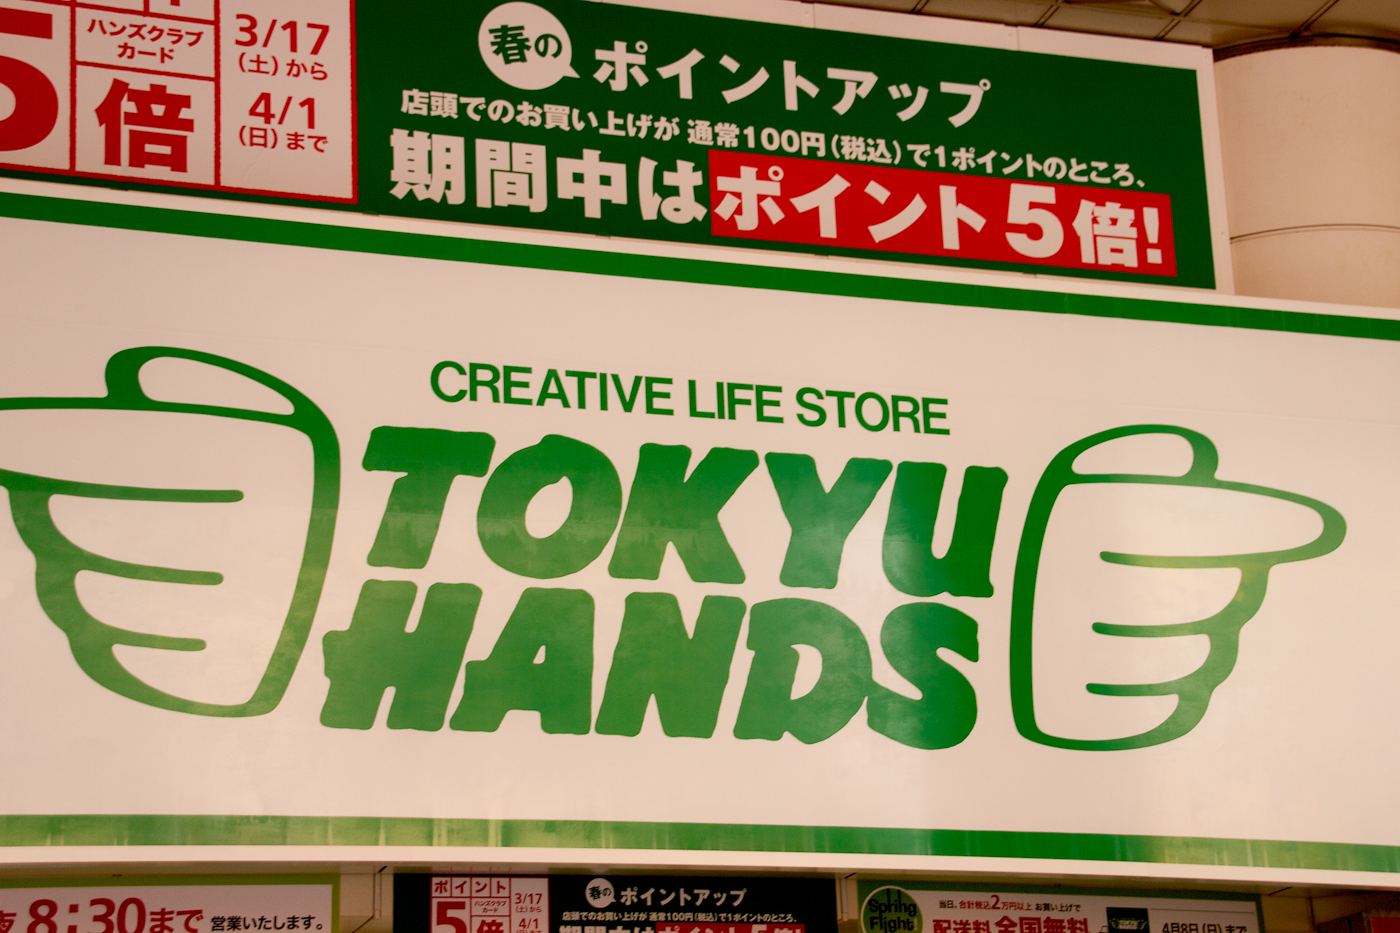 Tokyu Hands is the everything store. Weirdest shopping ever.